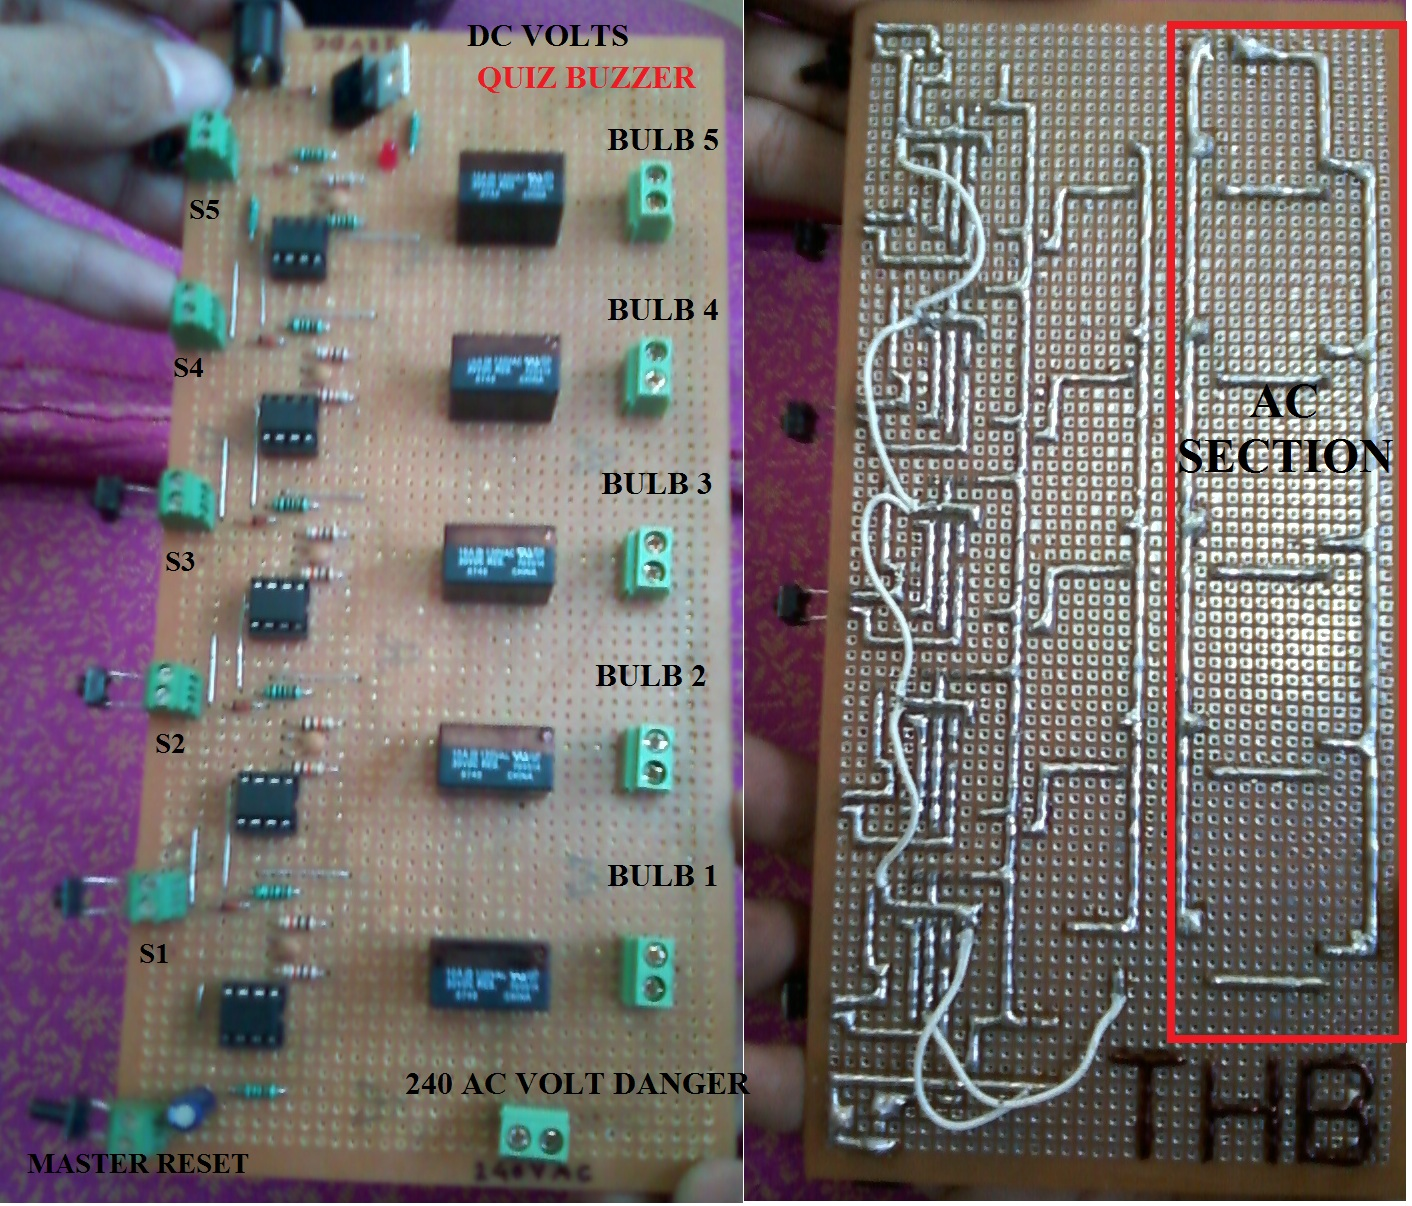 Thbelectronics quiz buzzer in circuit diagram you can easily show that 555 time ic use in bistable mode having two stable output ereis 5 switch of door bell is used ie s1s2s3s4 ccuart Images